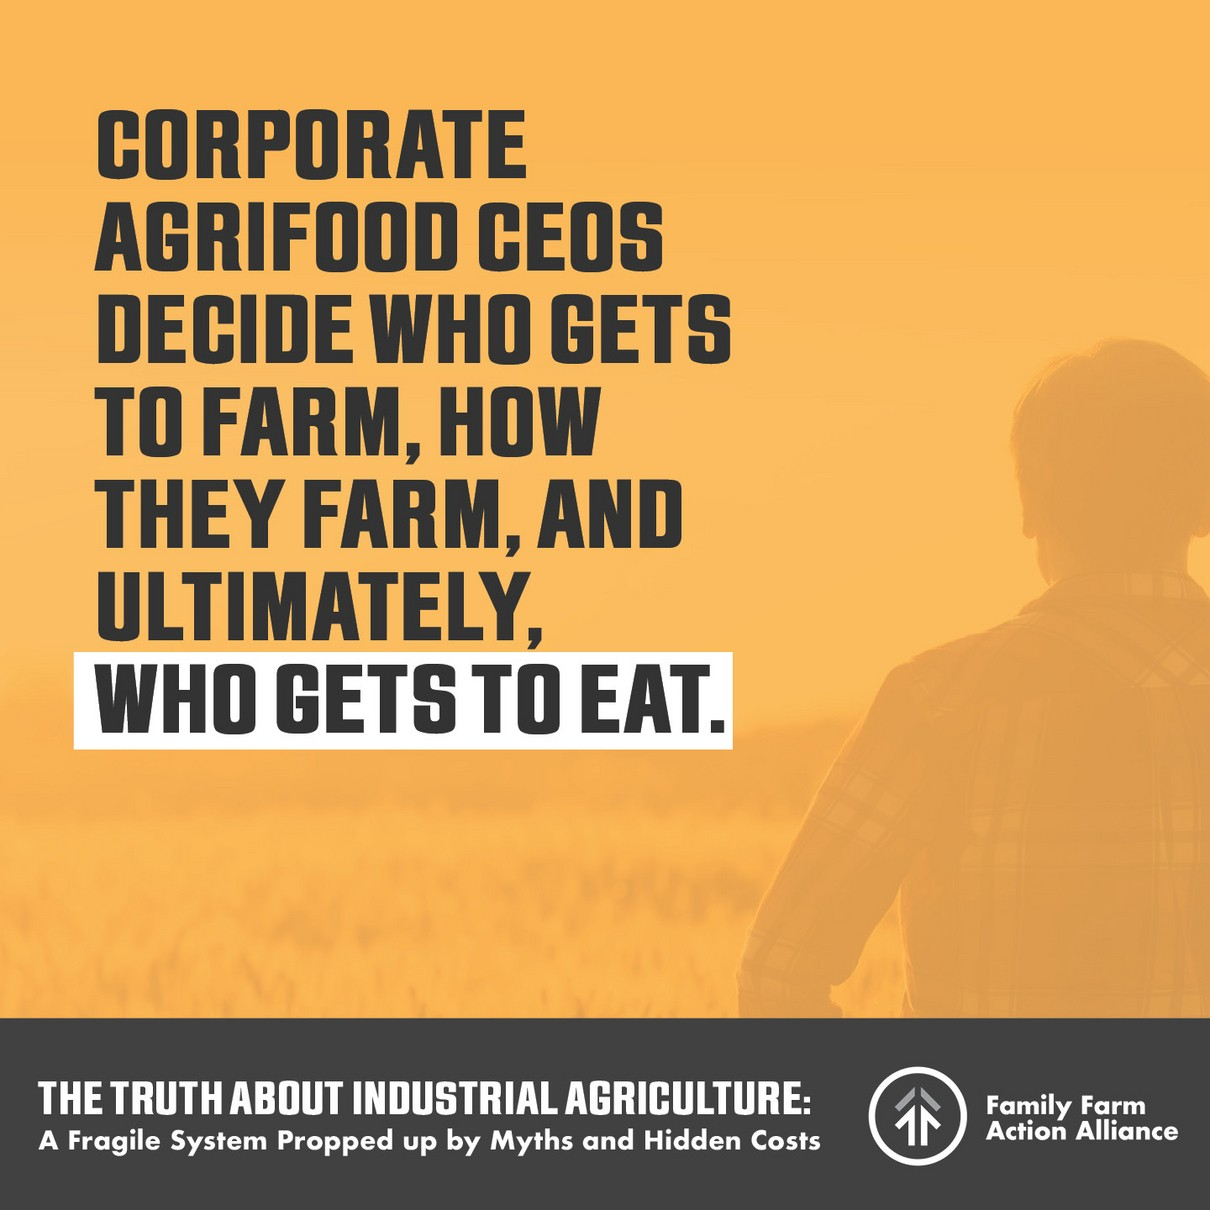 agrifood-corporations-decide-who-eats